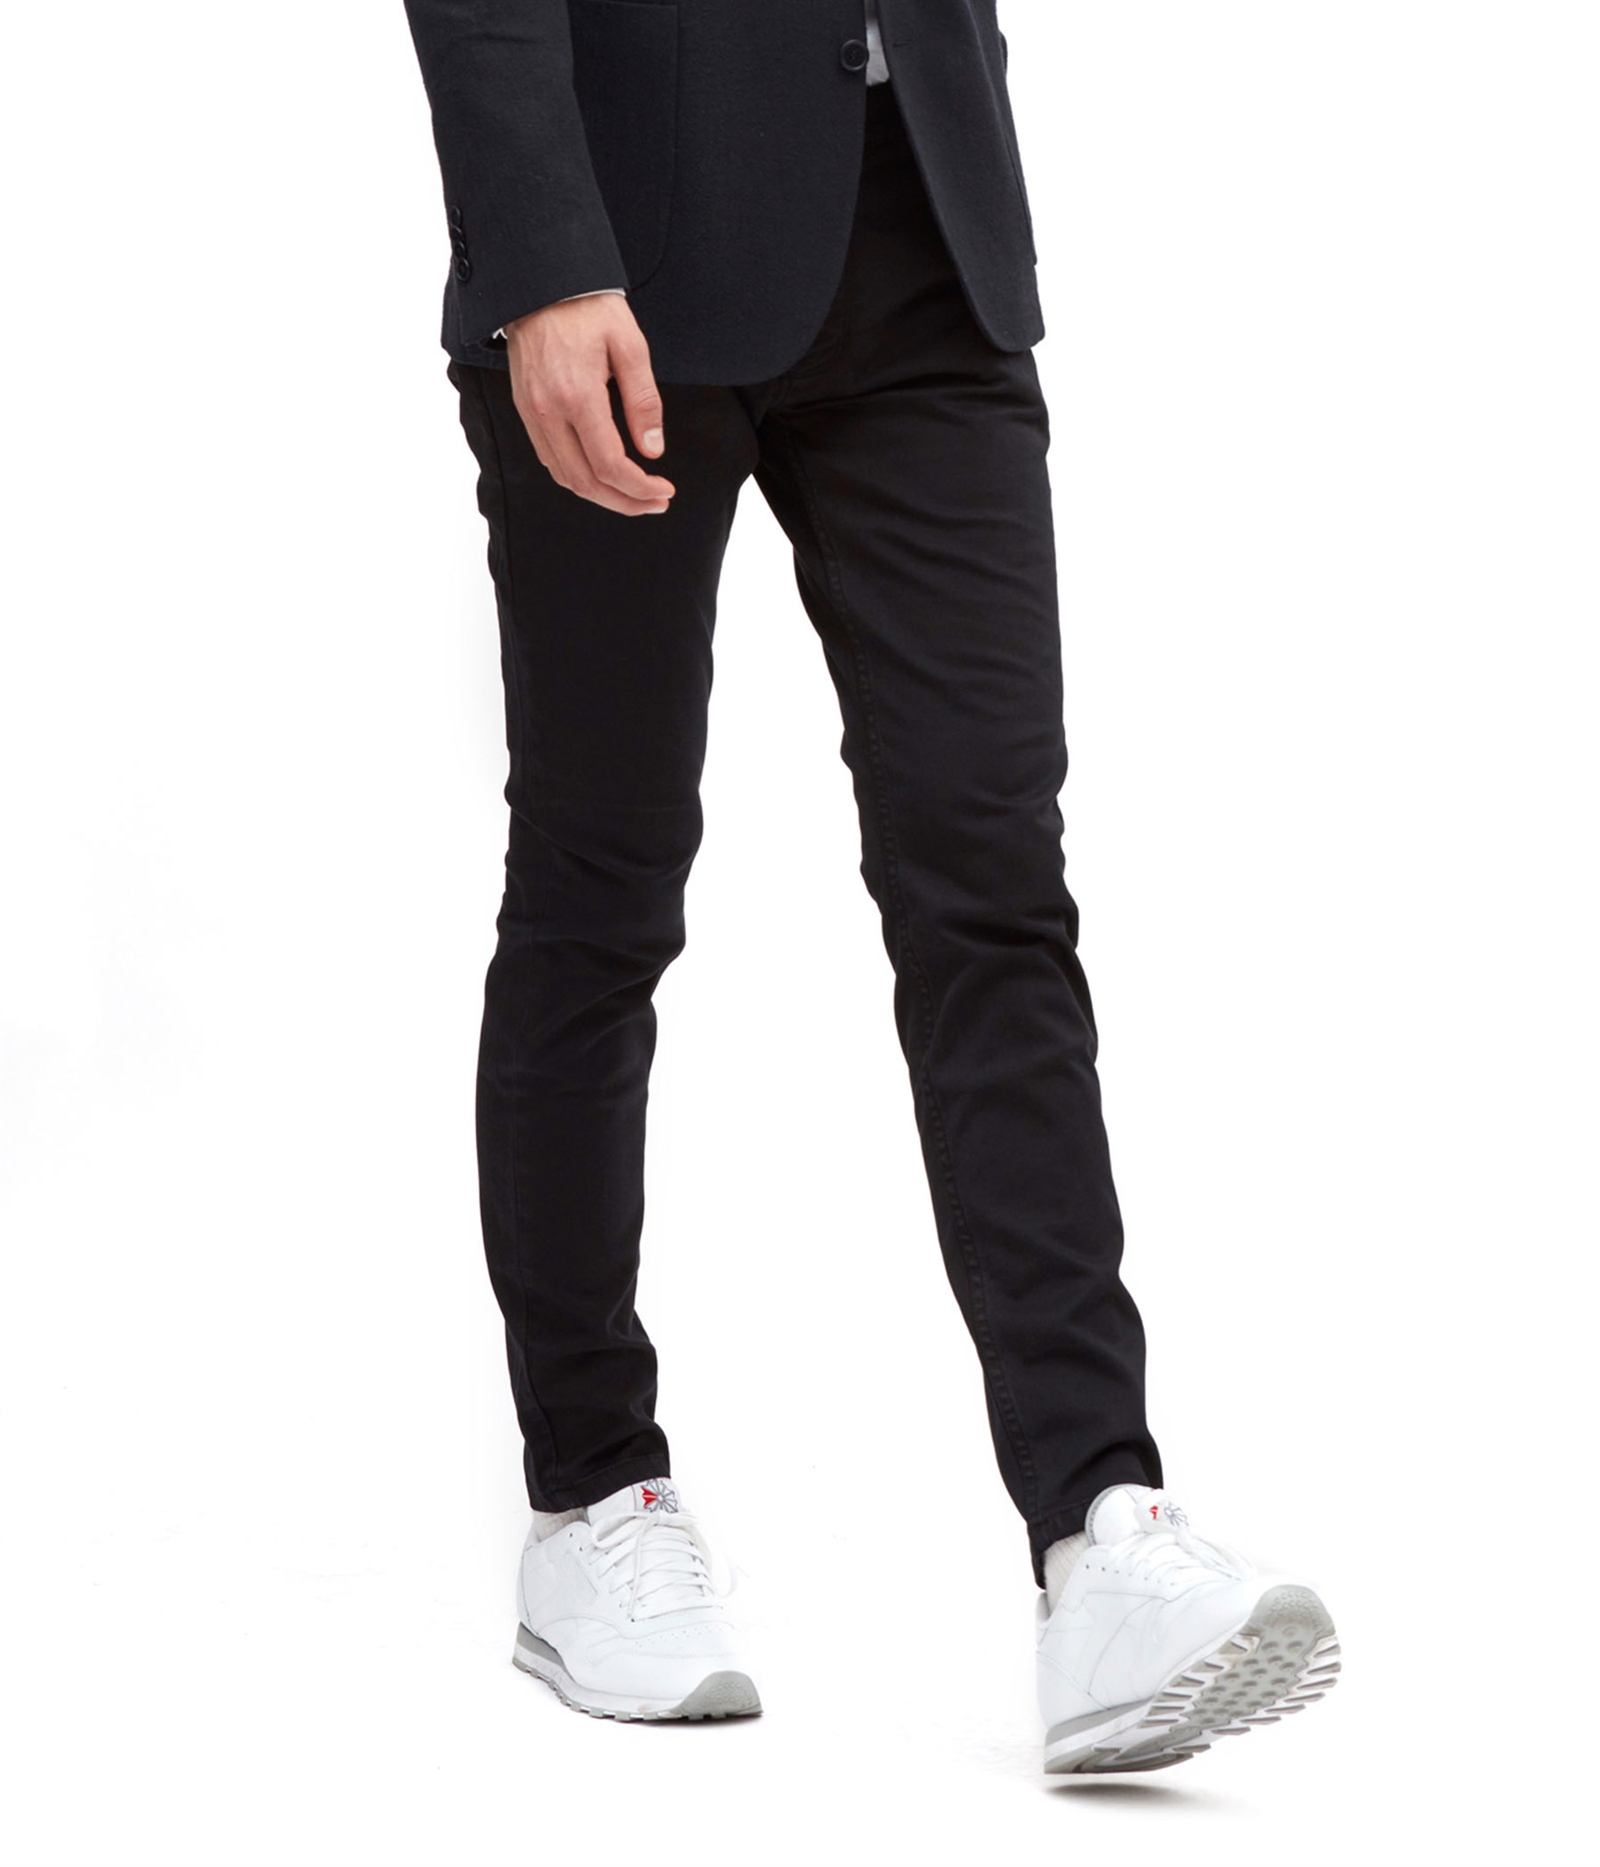 Velour Slim Black Swan Nostalgi Joshua By Chino Fit nqX6nOxE